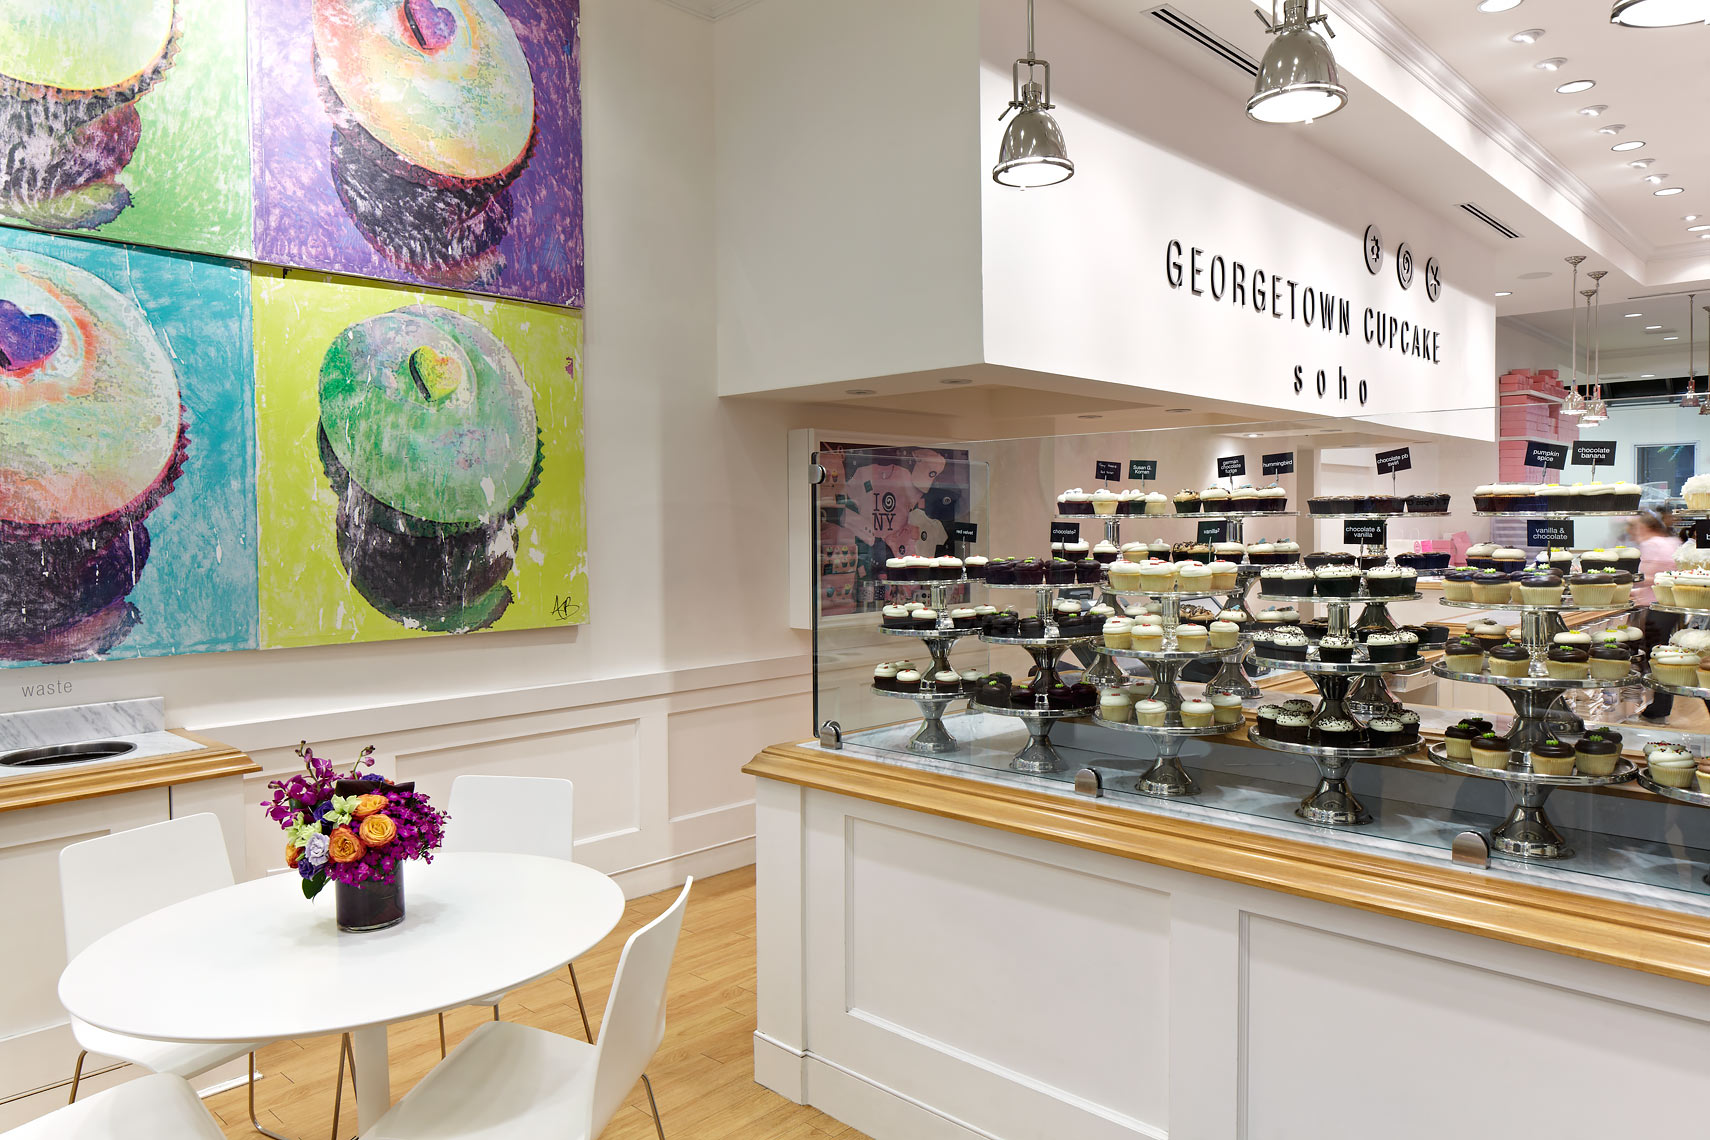 FOOD-Bakery1a-Georgetown-Cupcake